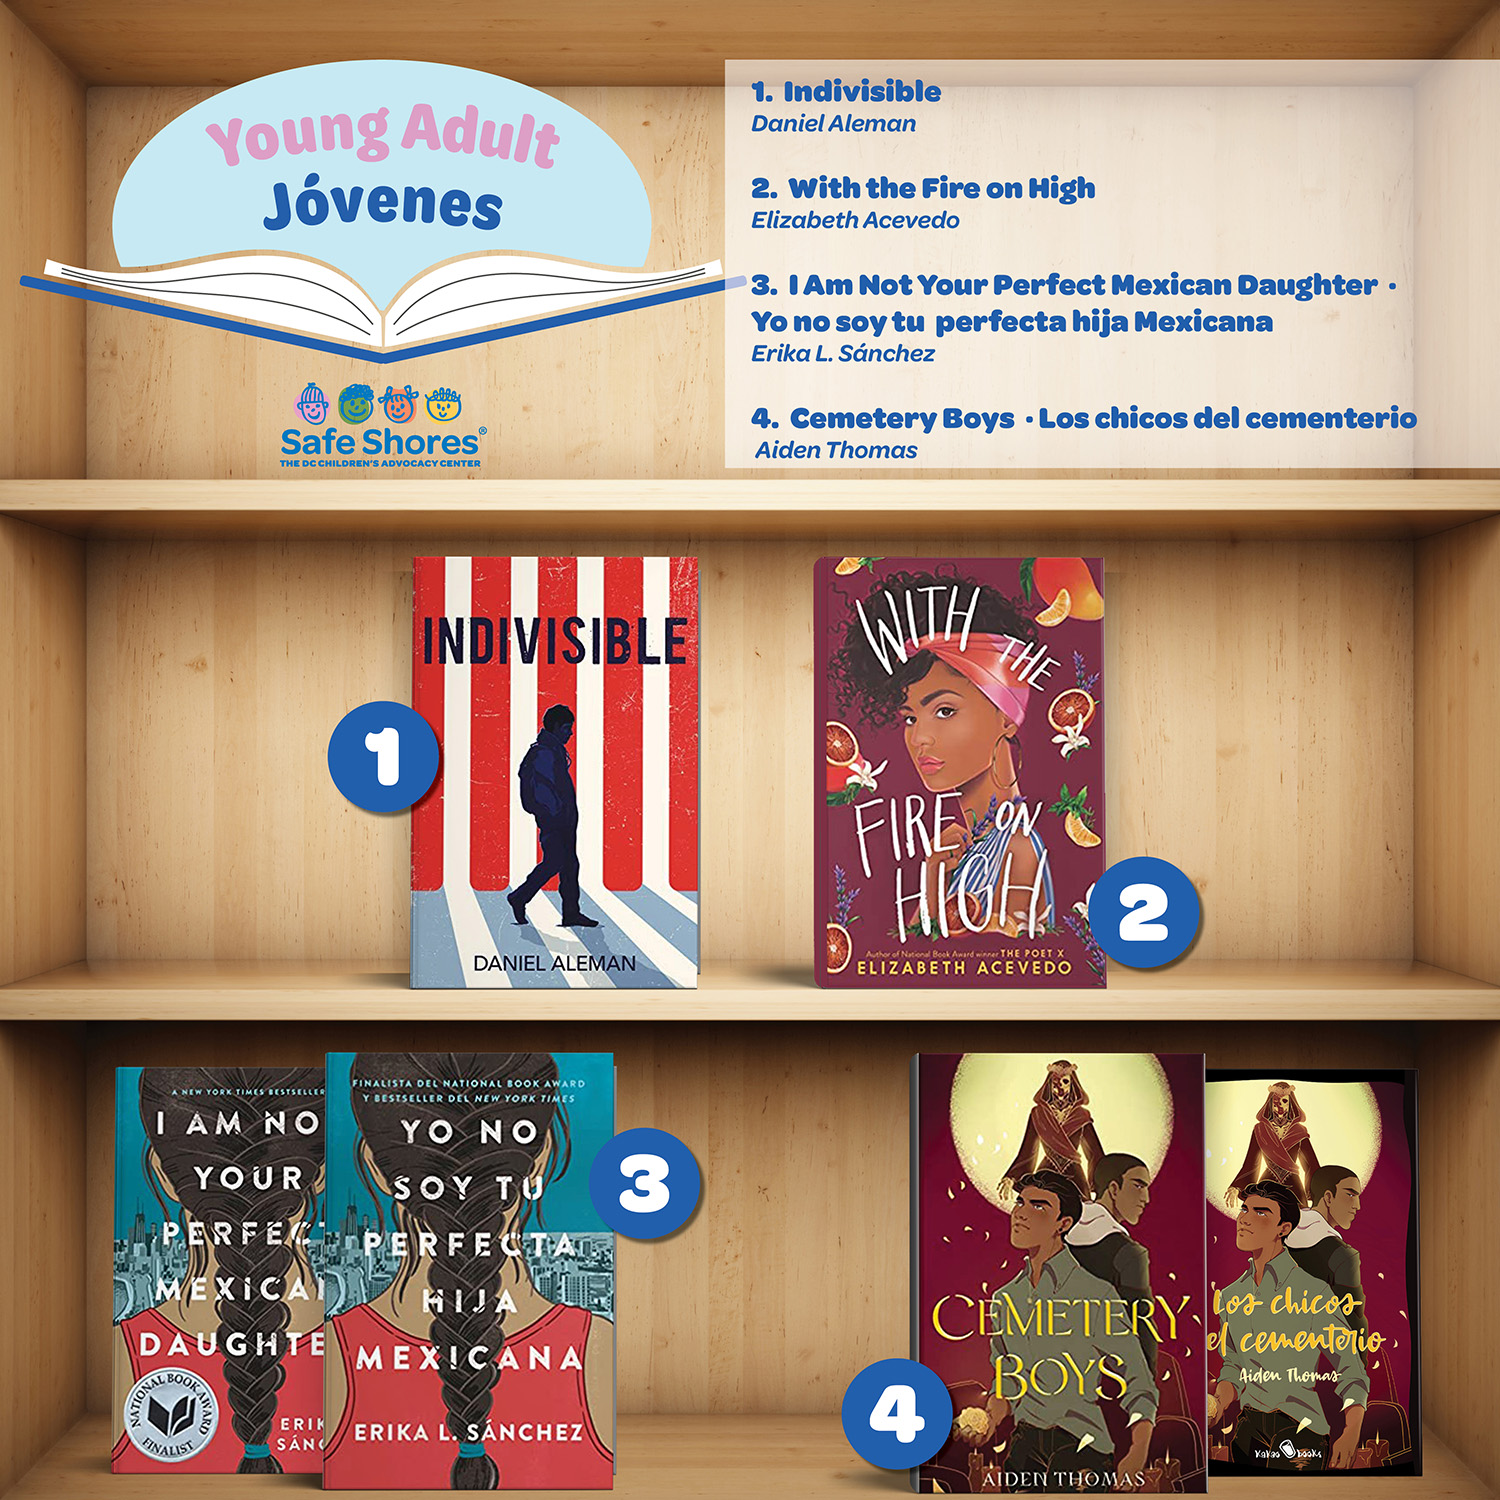 Latino Books Month for young adults. Books are: 1. Indivisible – Daniel Aleman 2. With the Fire on High – Elizabeth Acevedo 3. I am Not Your Perfect Mexican Daughter | Yo No Soy Tu Perfecta Hija Mexicana – Erika L. Sánchez 4. Cemetery Boys | Los Chicos del Cementerio – Aiden Thomas